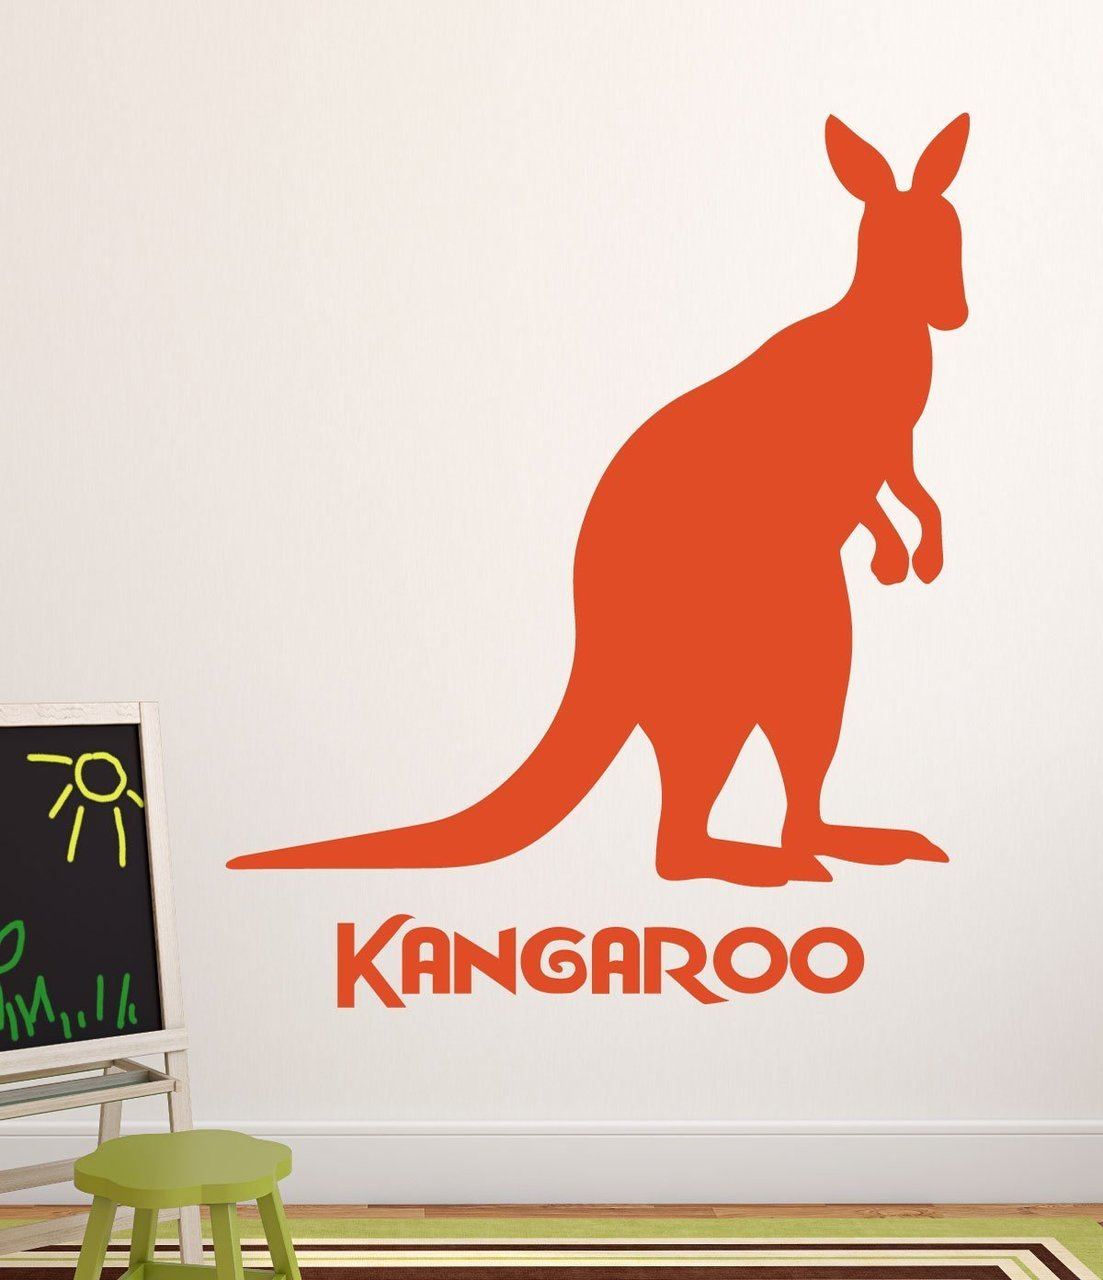 Zoo Animal Wall Decals - Kangaroo